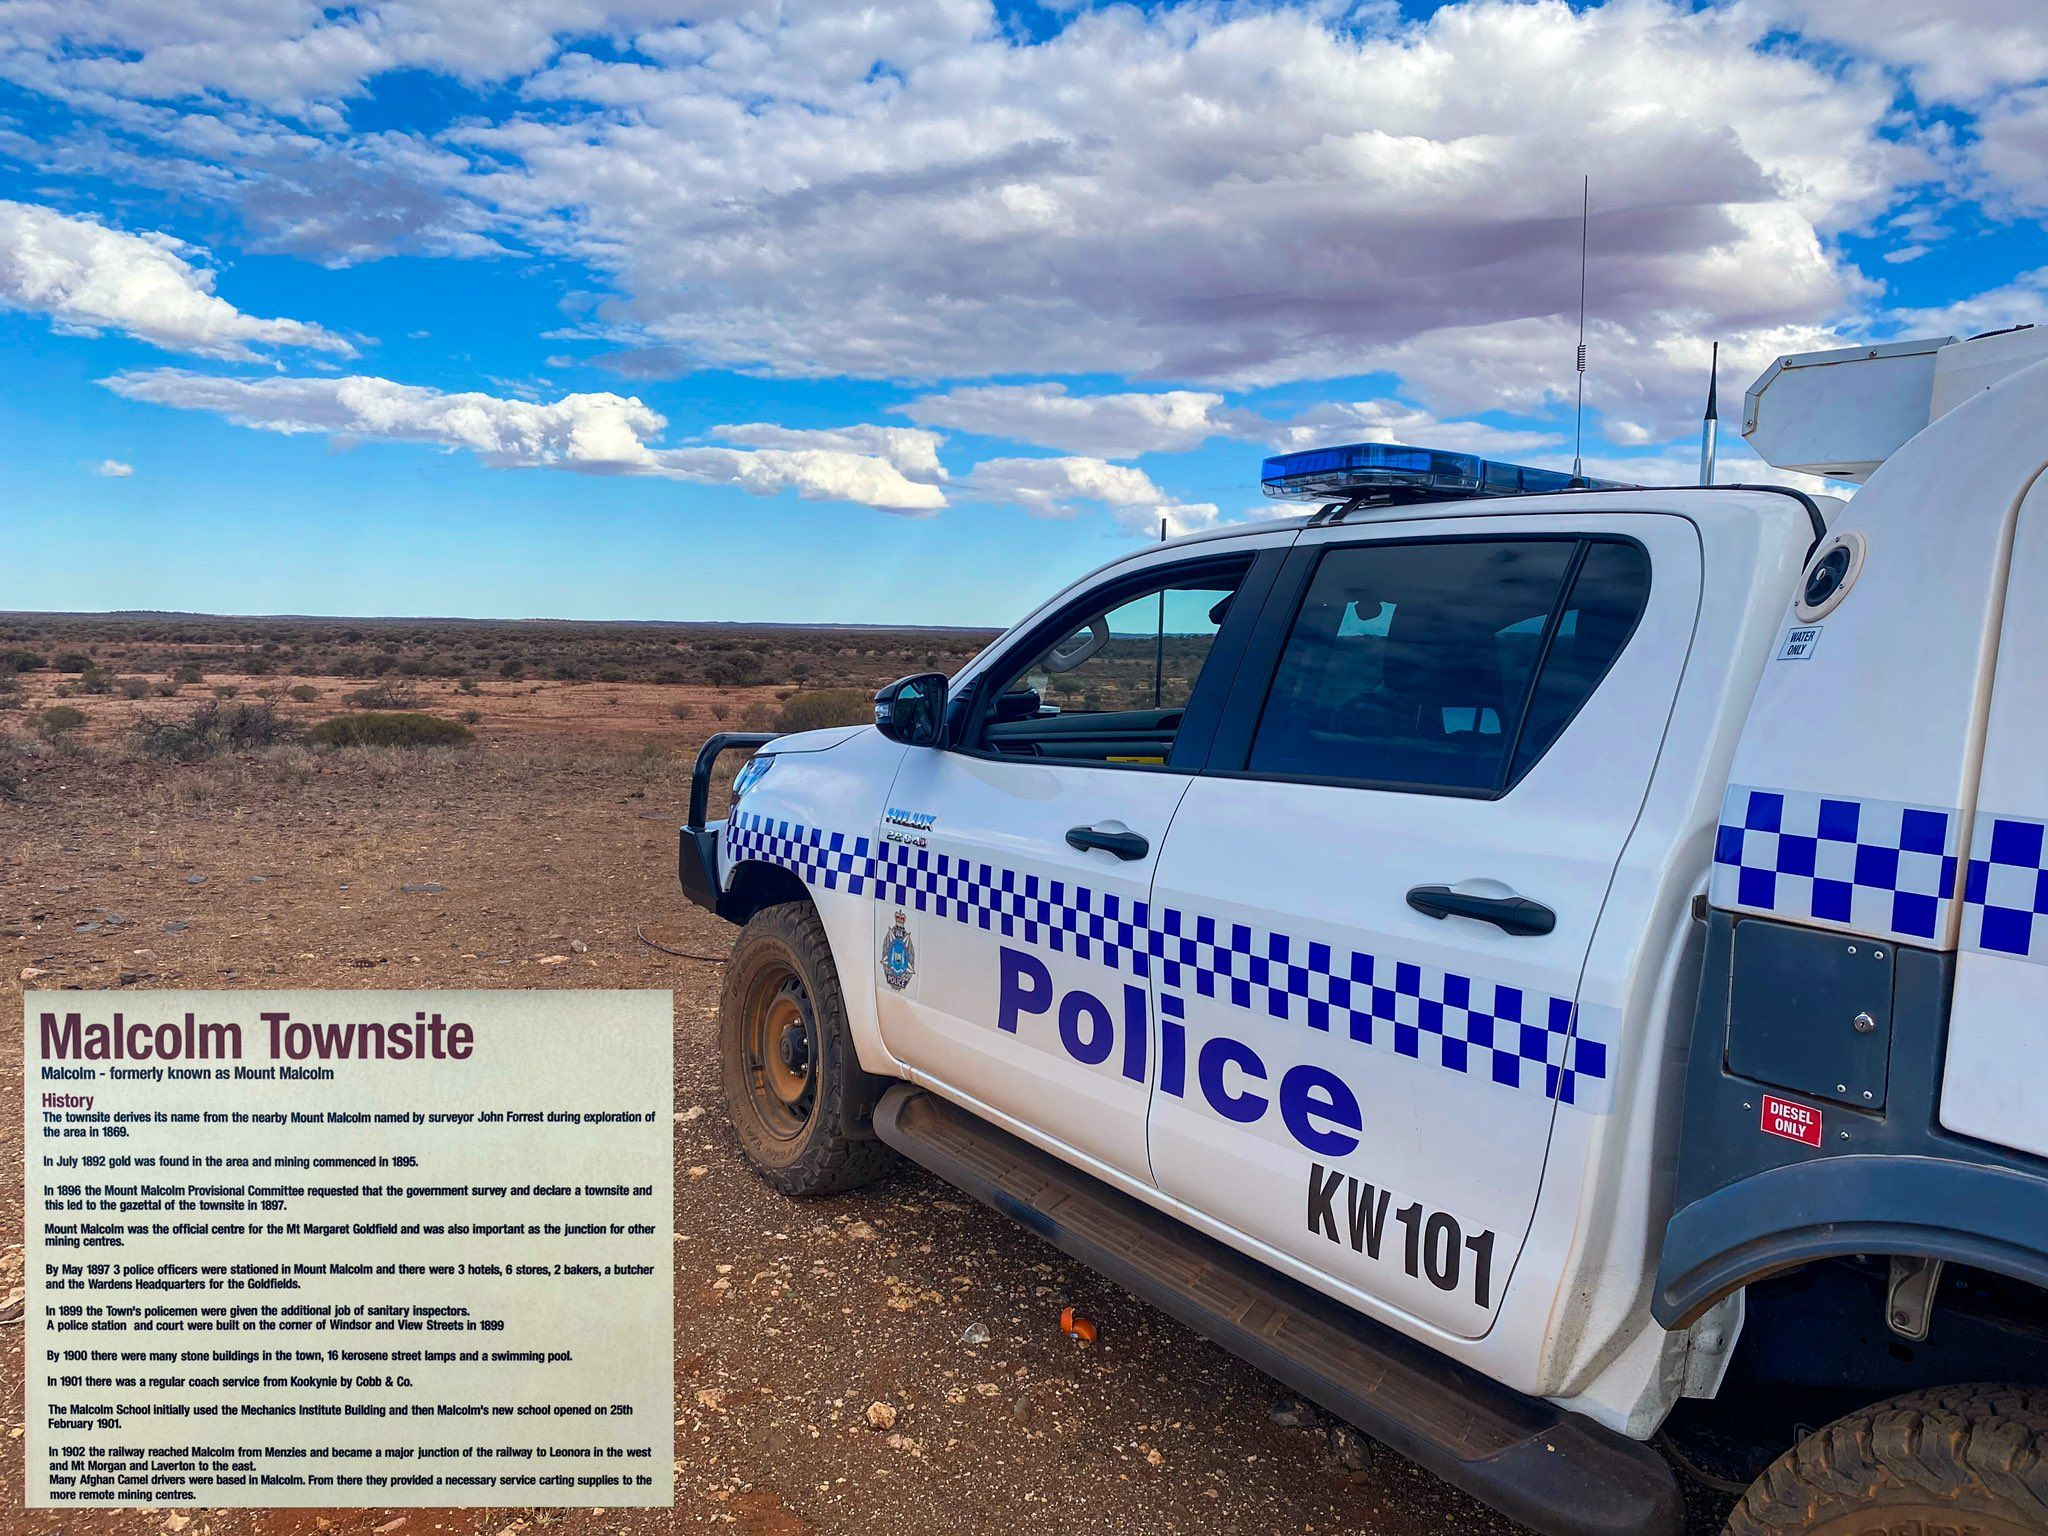 Leonora Police On Twitter Police Police Officer Police Cars